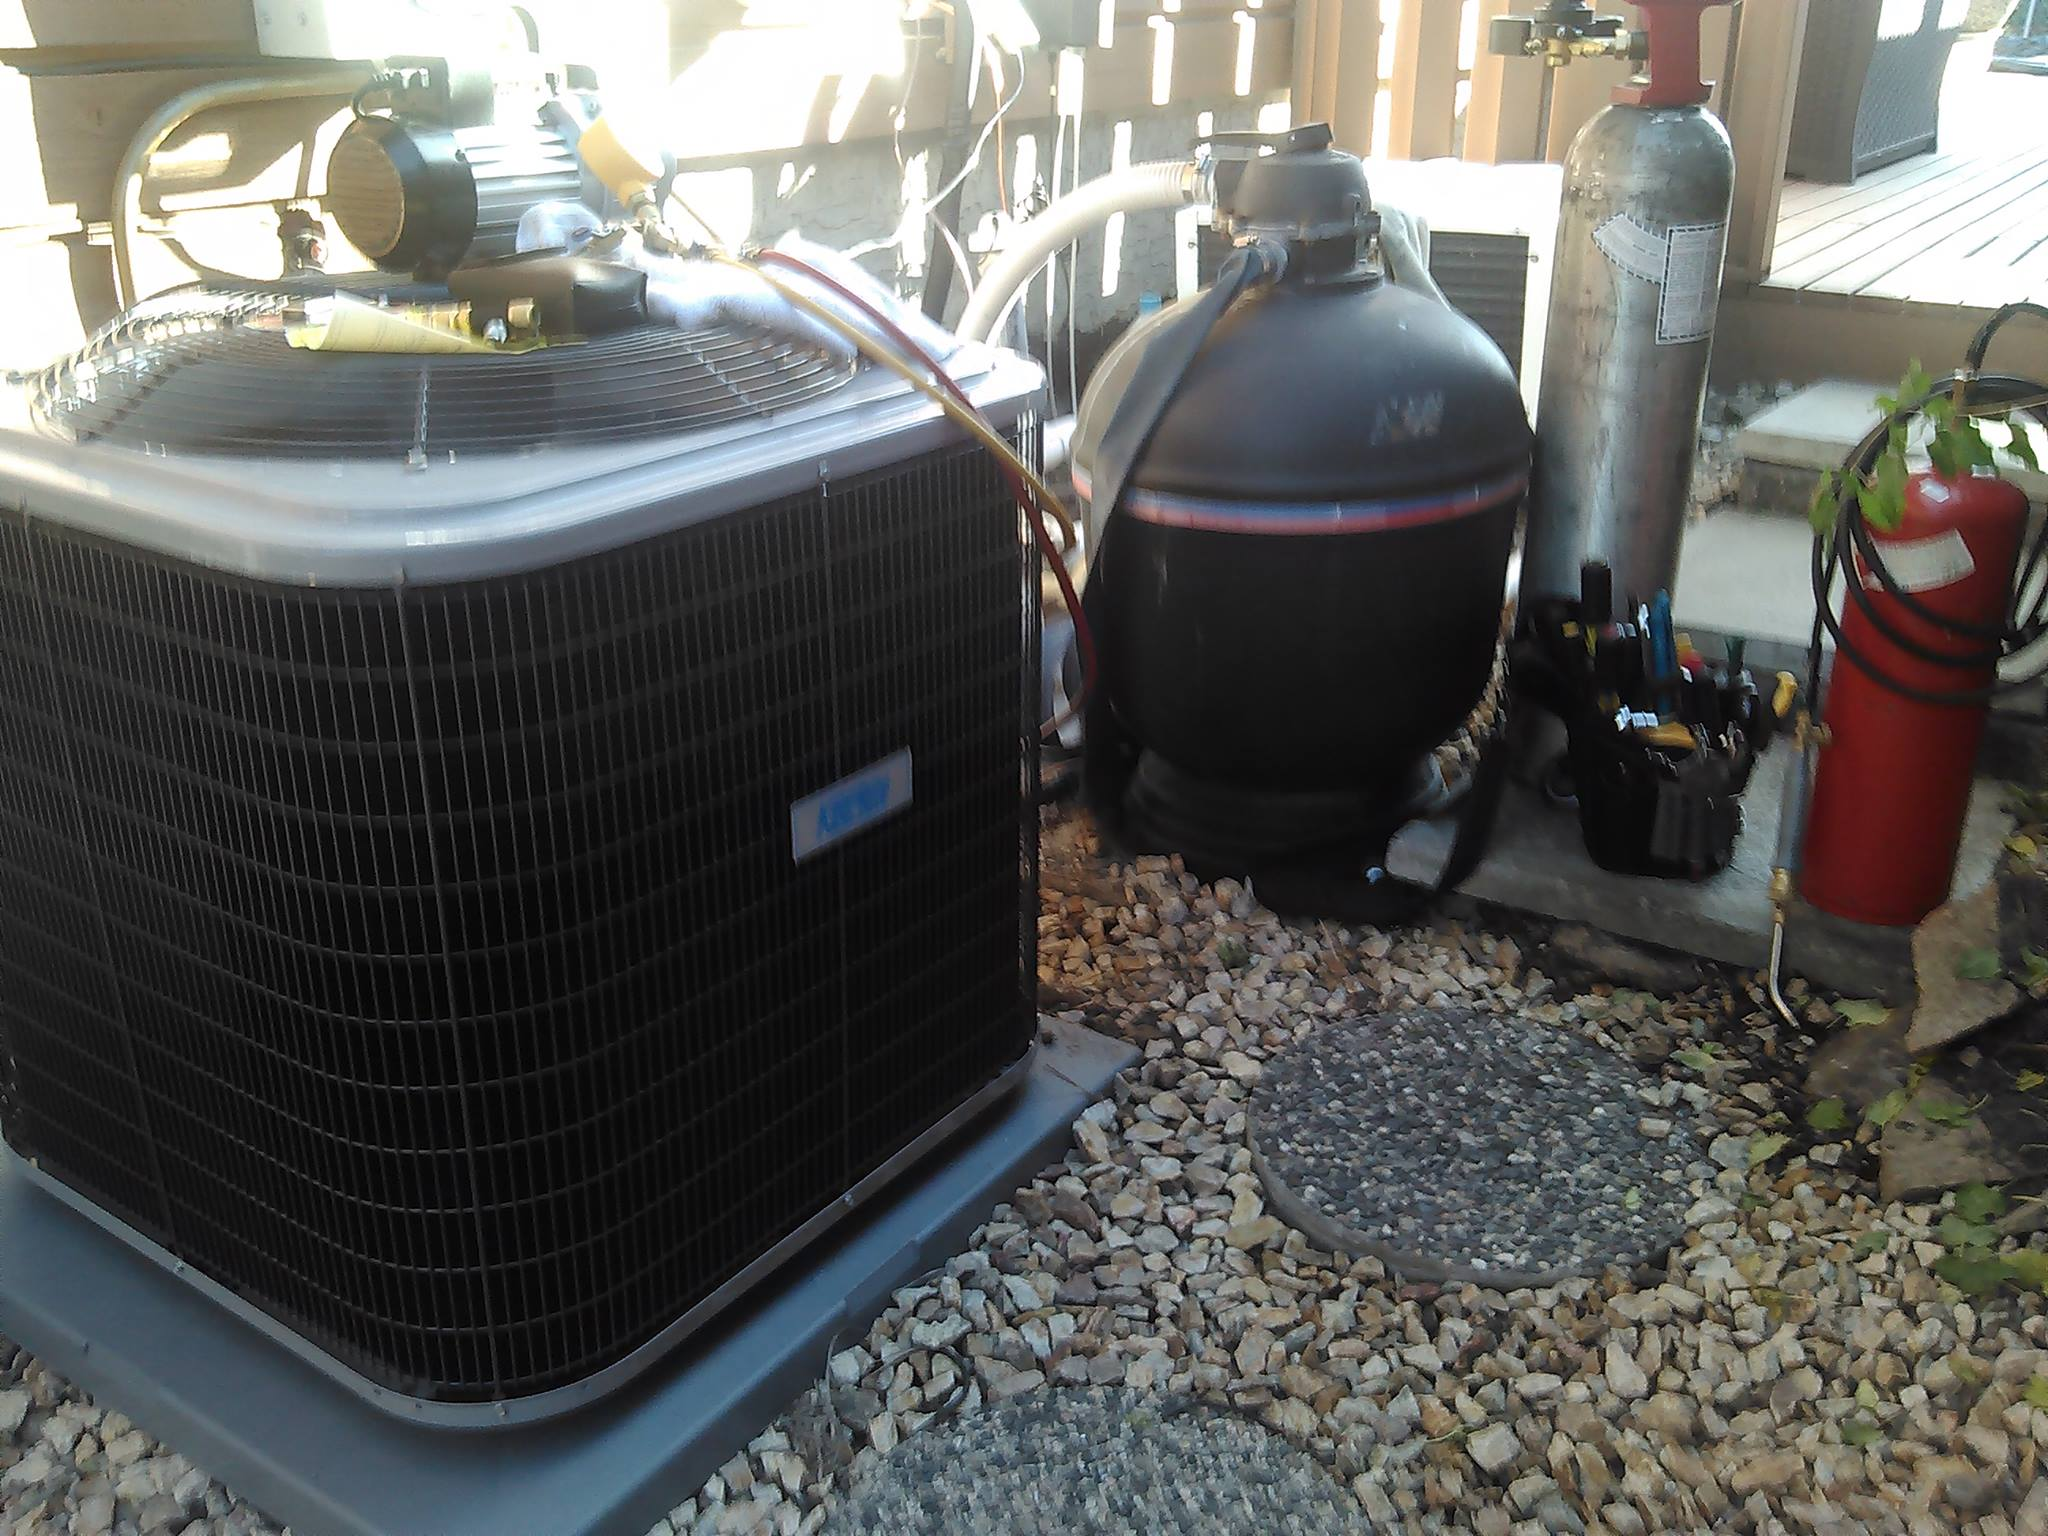 Services - Air Conditioning